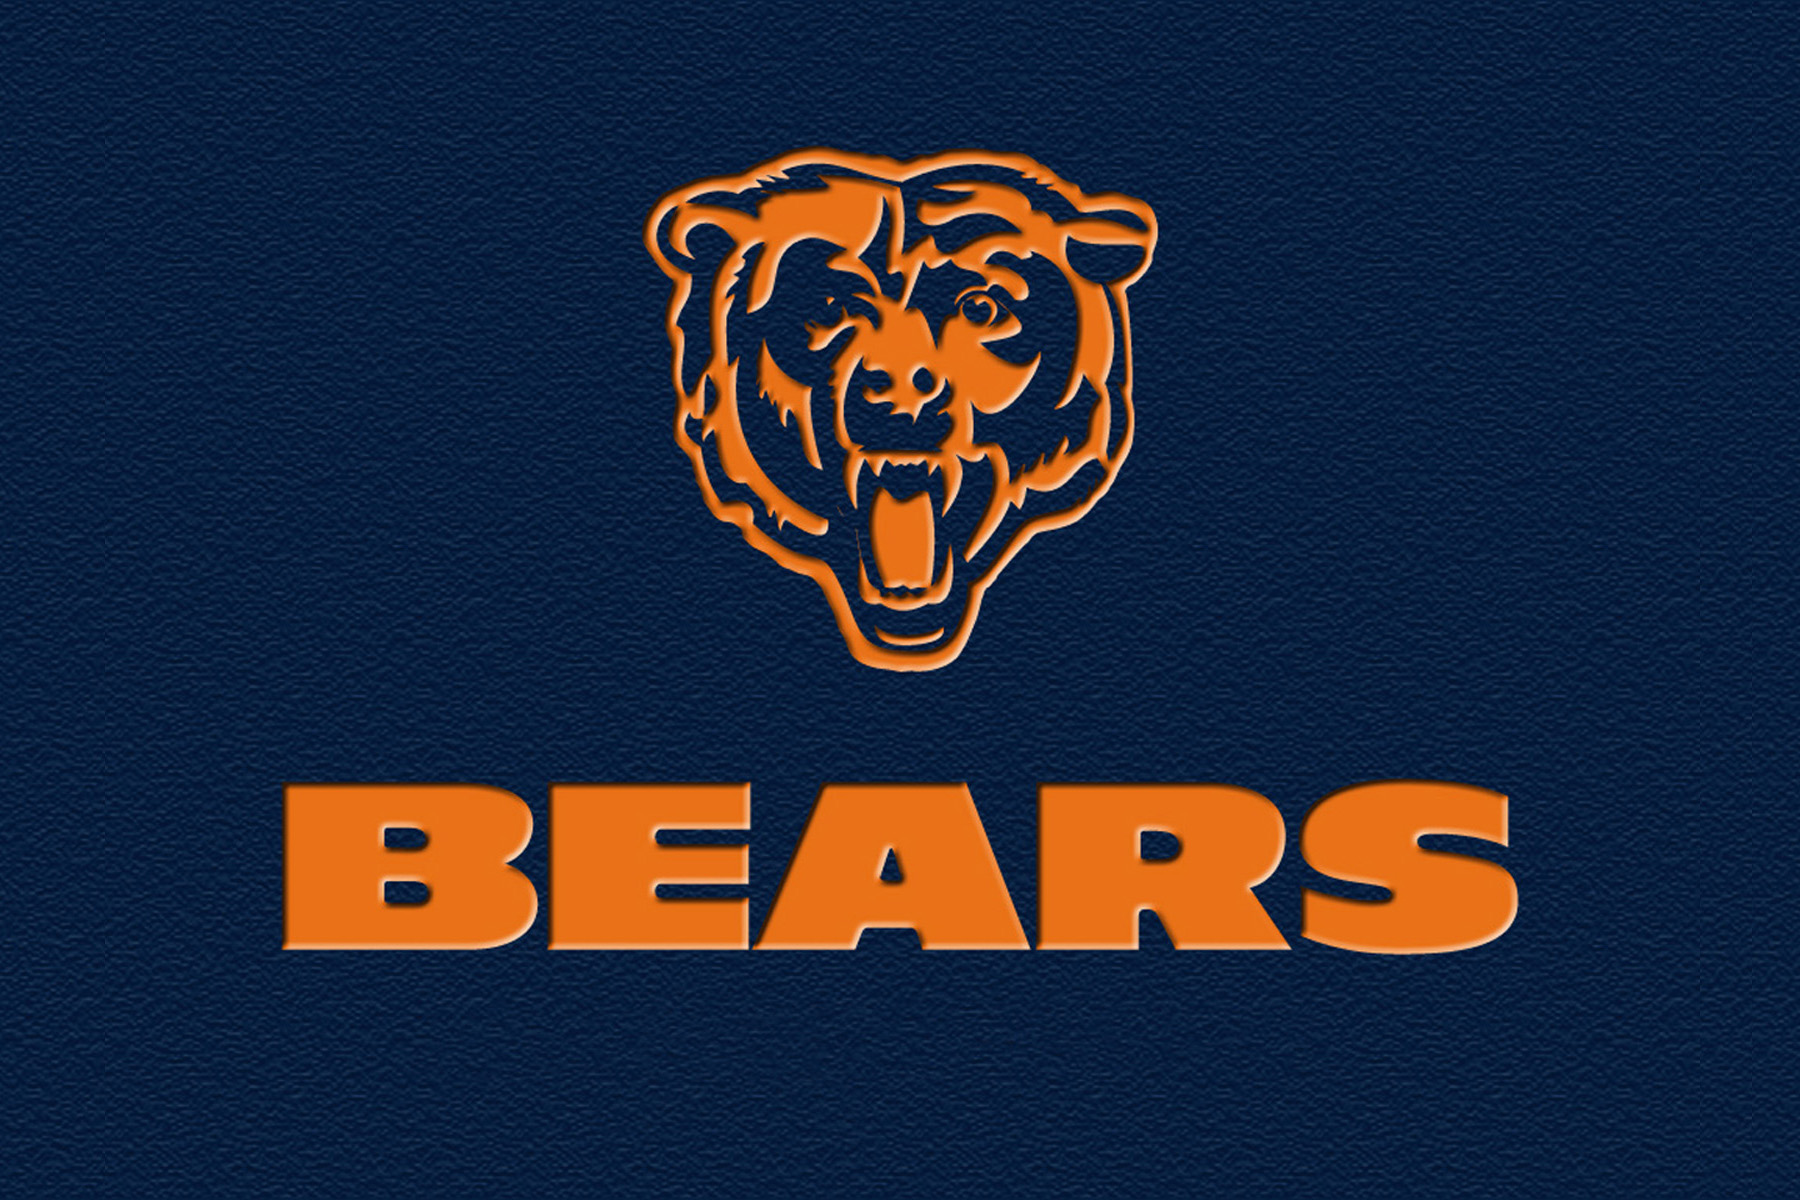 Chicago Bears Logos NFL Find Logos At FindThatLogocom The 1800x1200